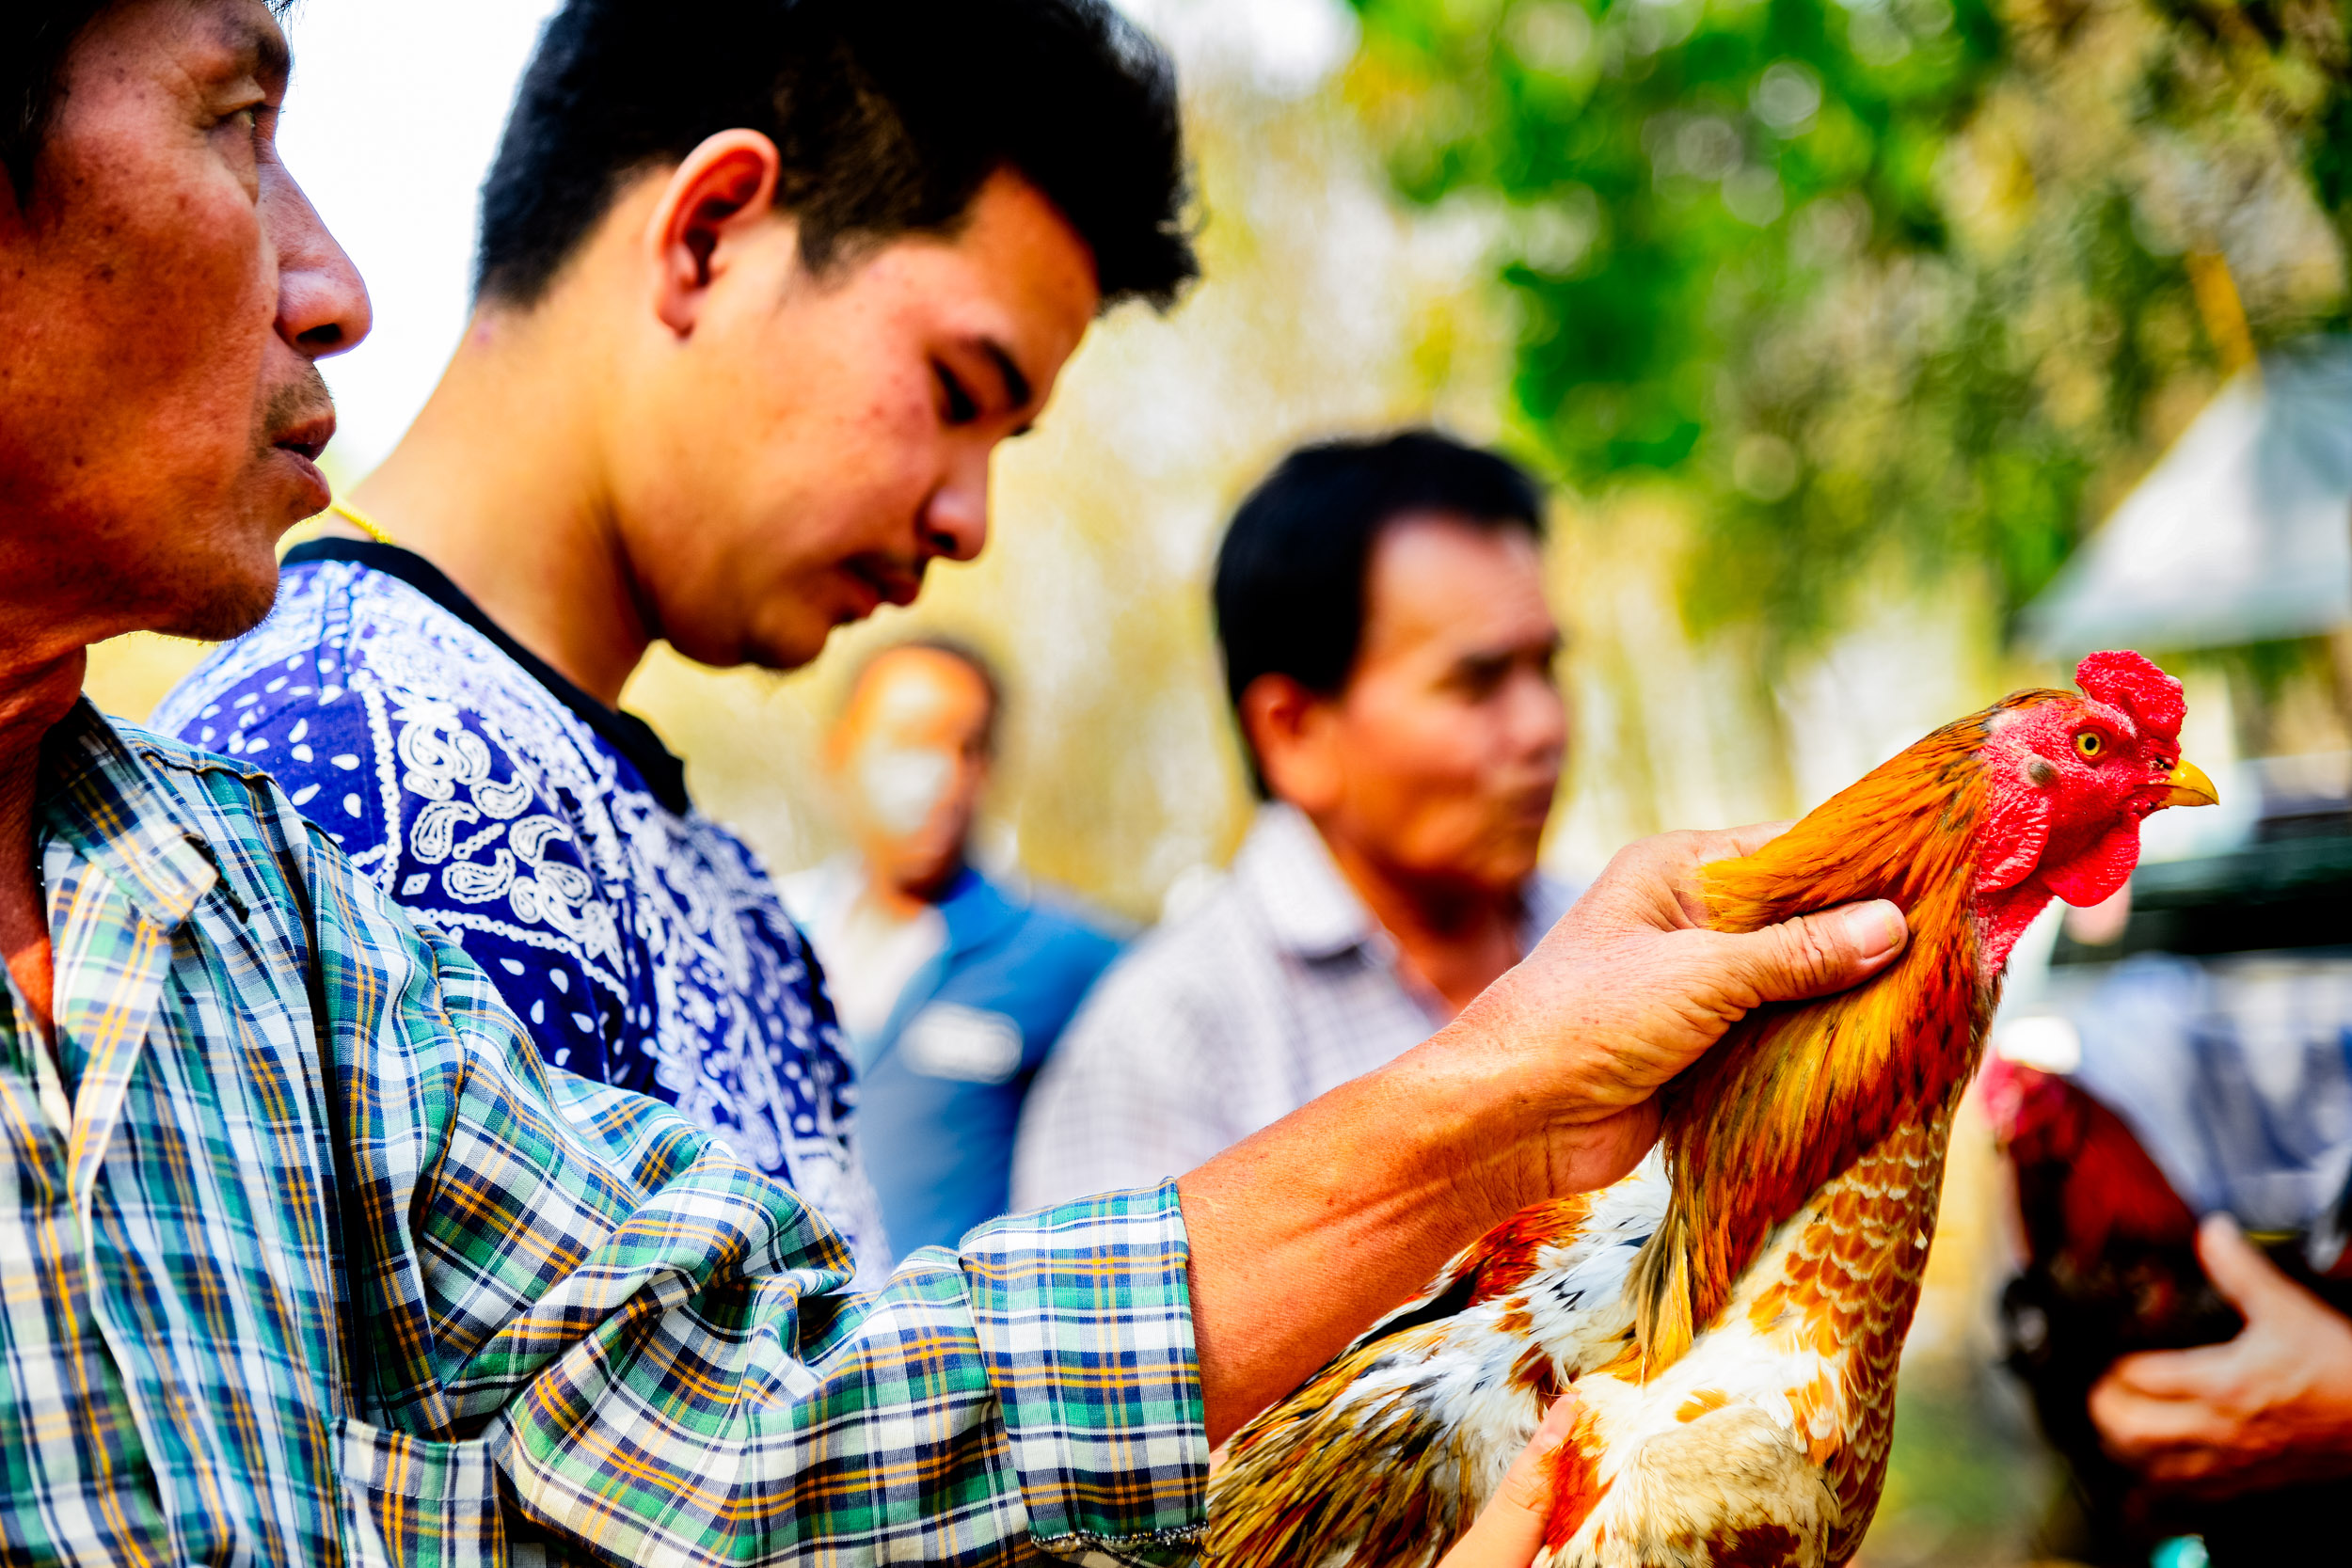 buying a rooster. Street photography ideas